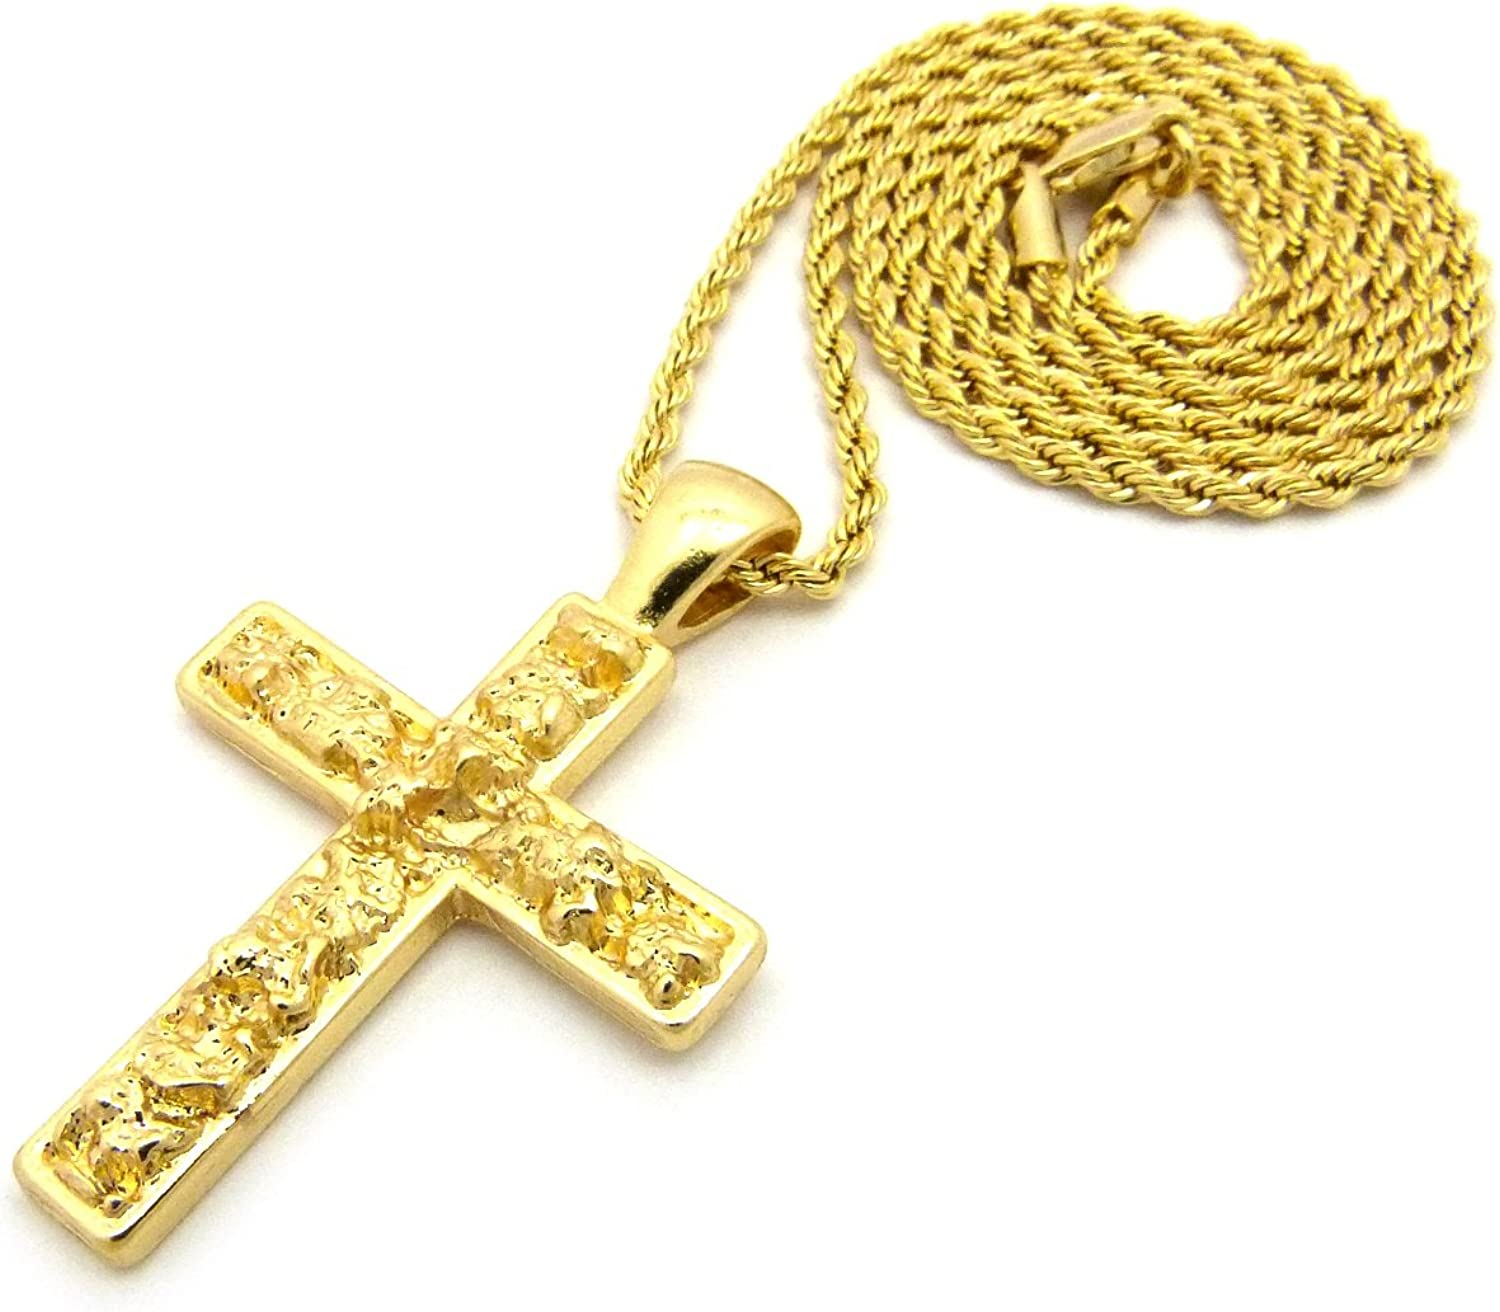 Polished Nugget Cross Pendant w// 2mm 24 Rope Chain Necklace in Gold-Tone